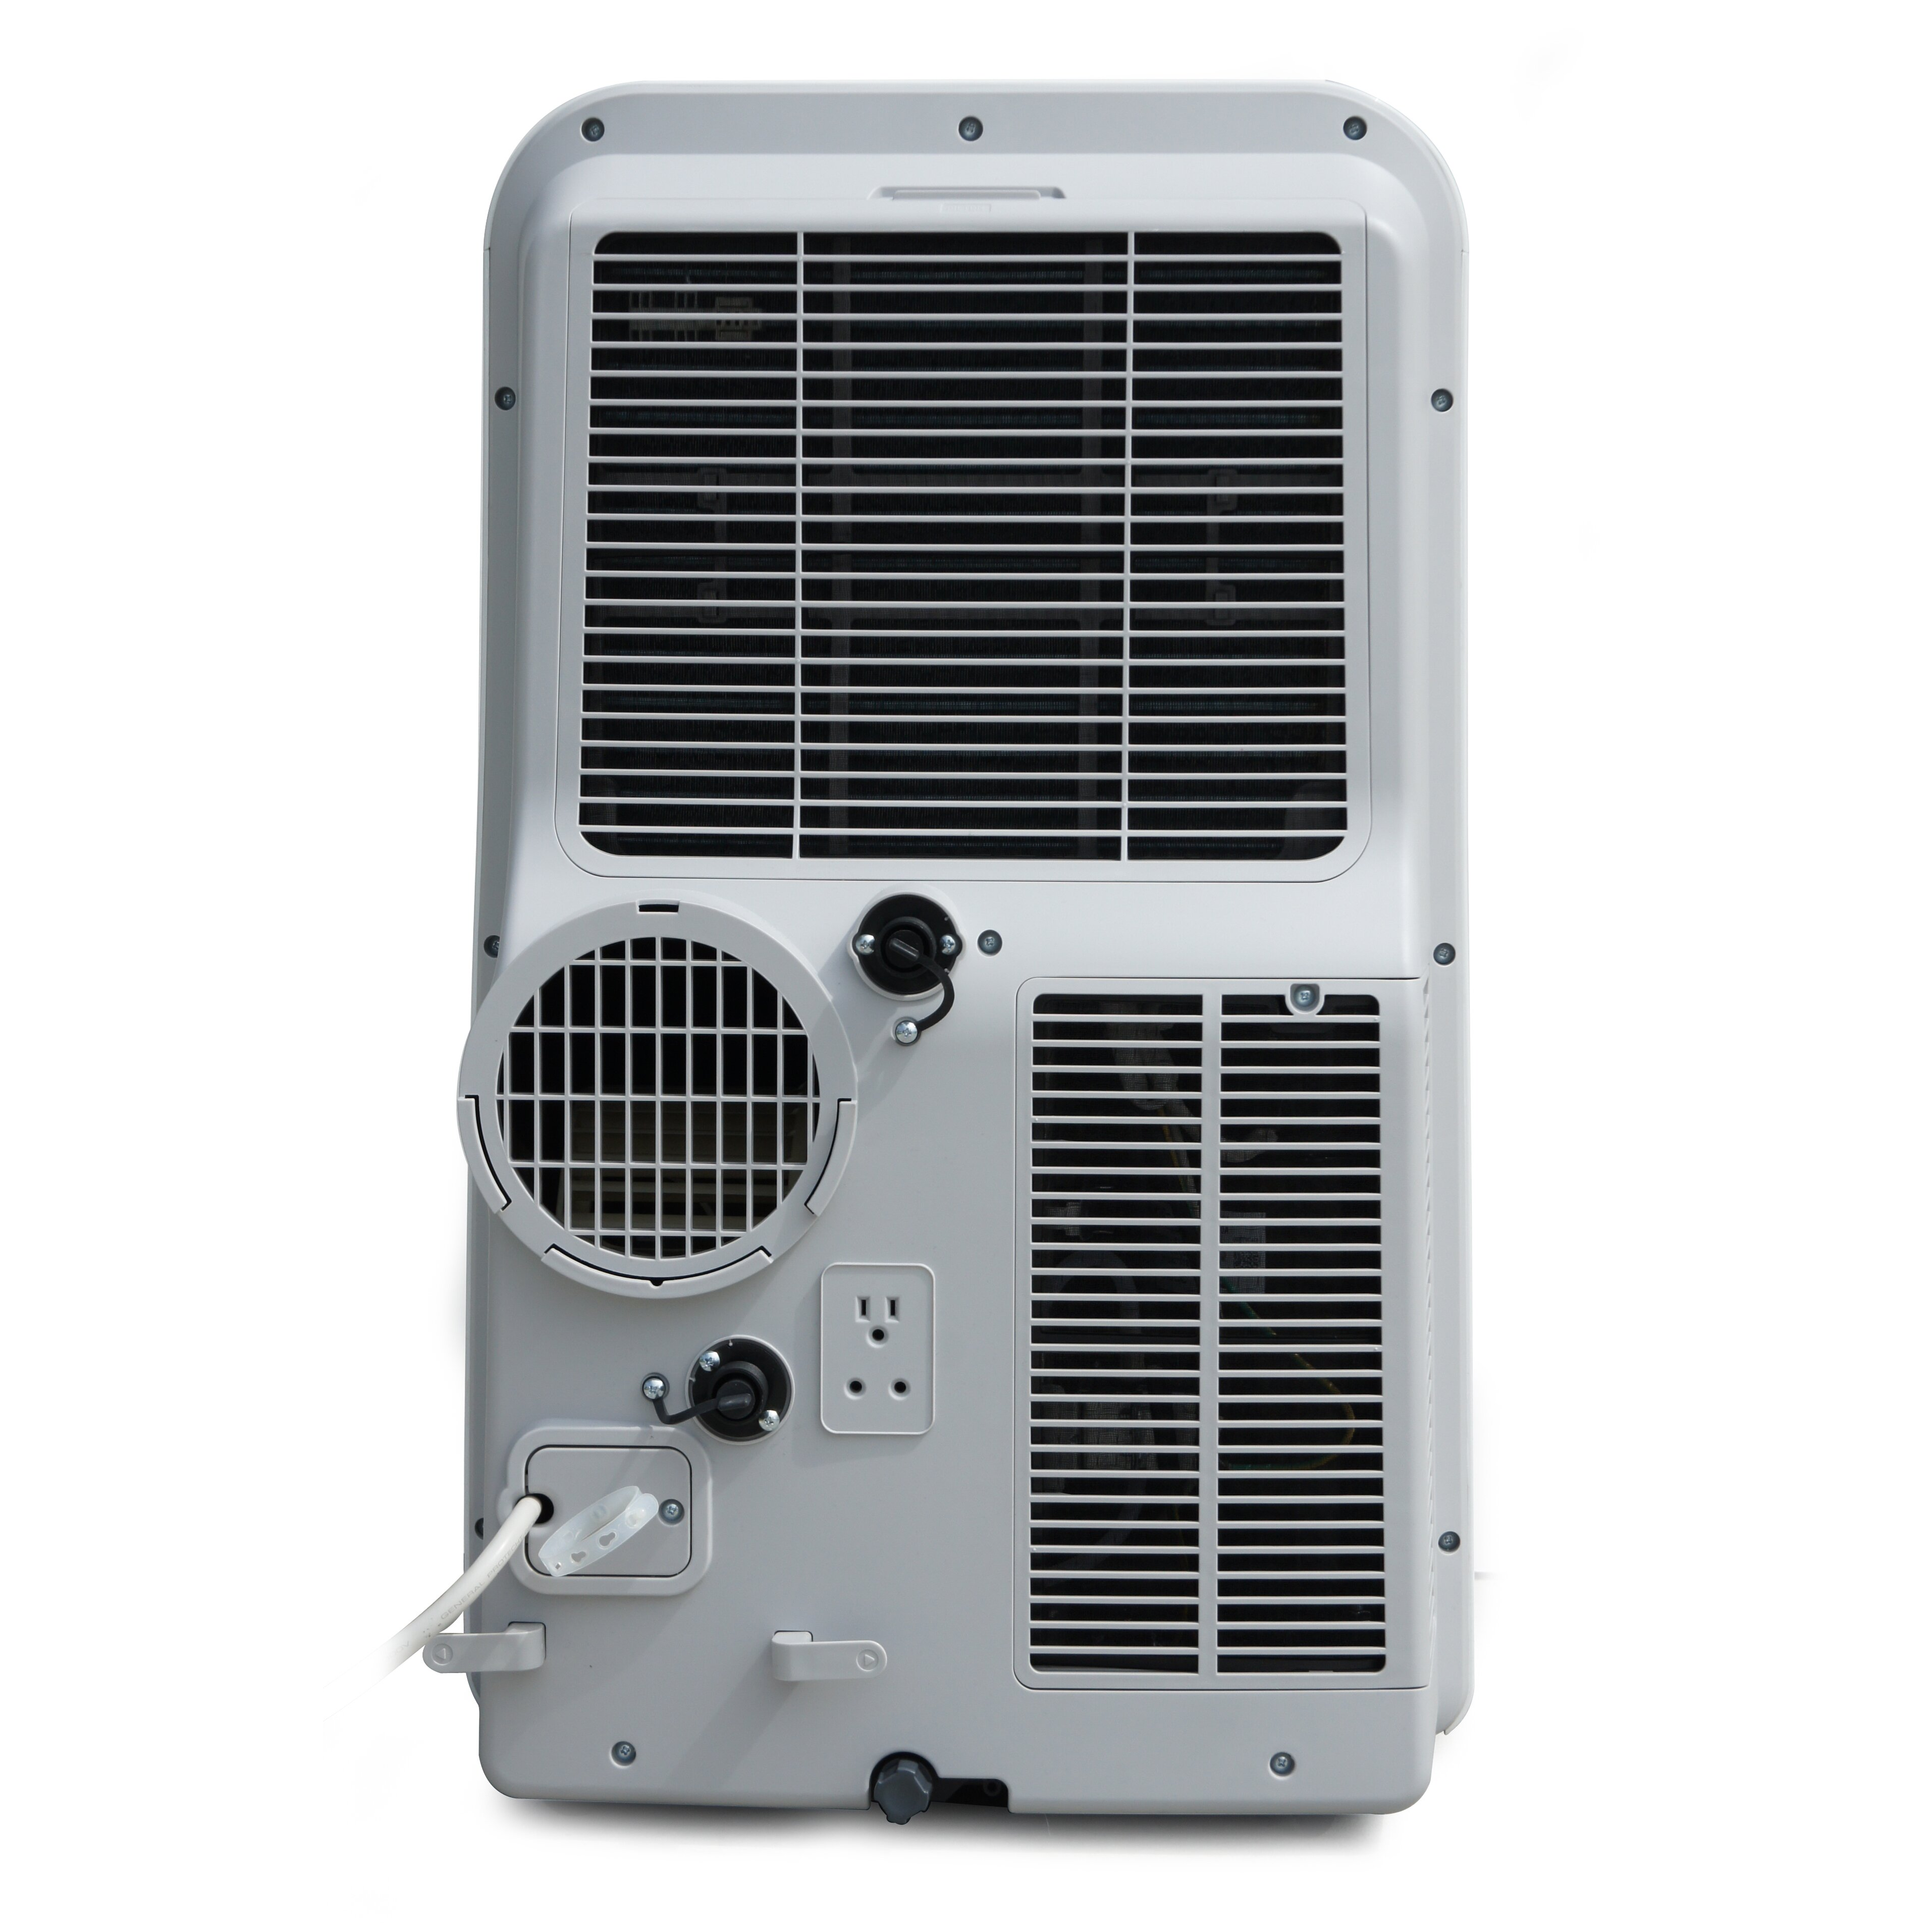 #5A6671 Sunpentown 14 000 BTU Portable Air Conditioner & Reviews  Most Recent 13730 Ratings On Portable Air Conditioners image with 3828x3828 px on helpvideos.info - Air Conditioners, Air Coolers and more